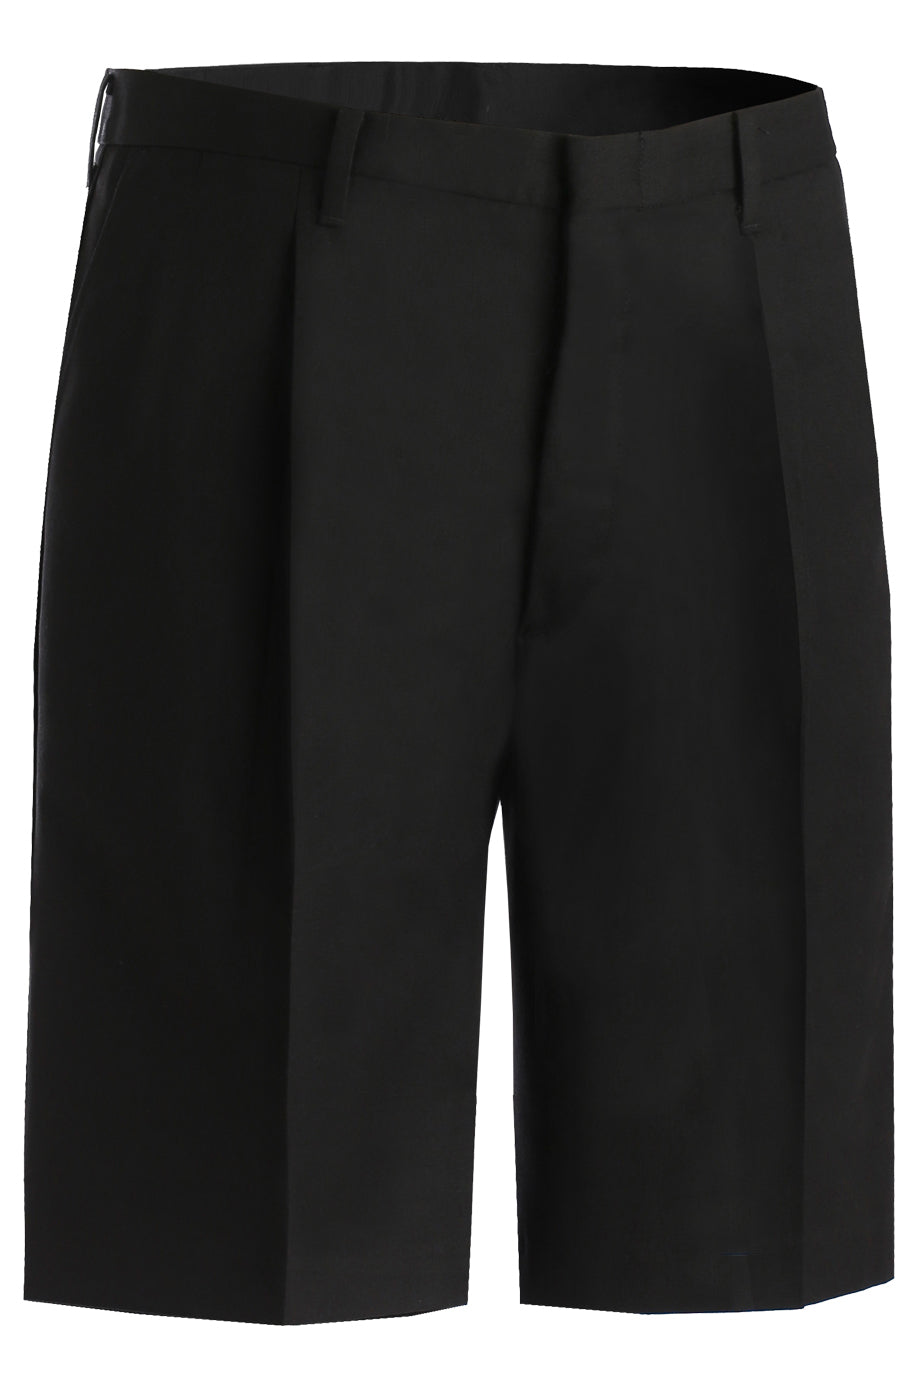 Black Edwards Mens Business Casual Pleated Chino Short